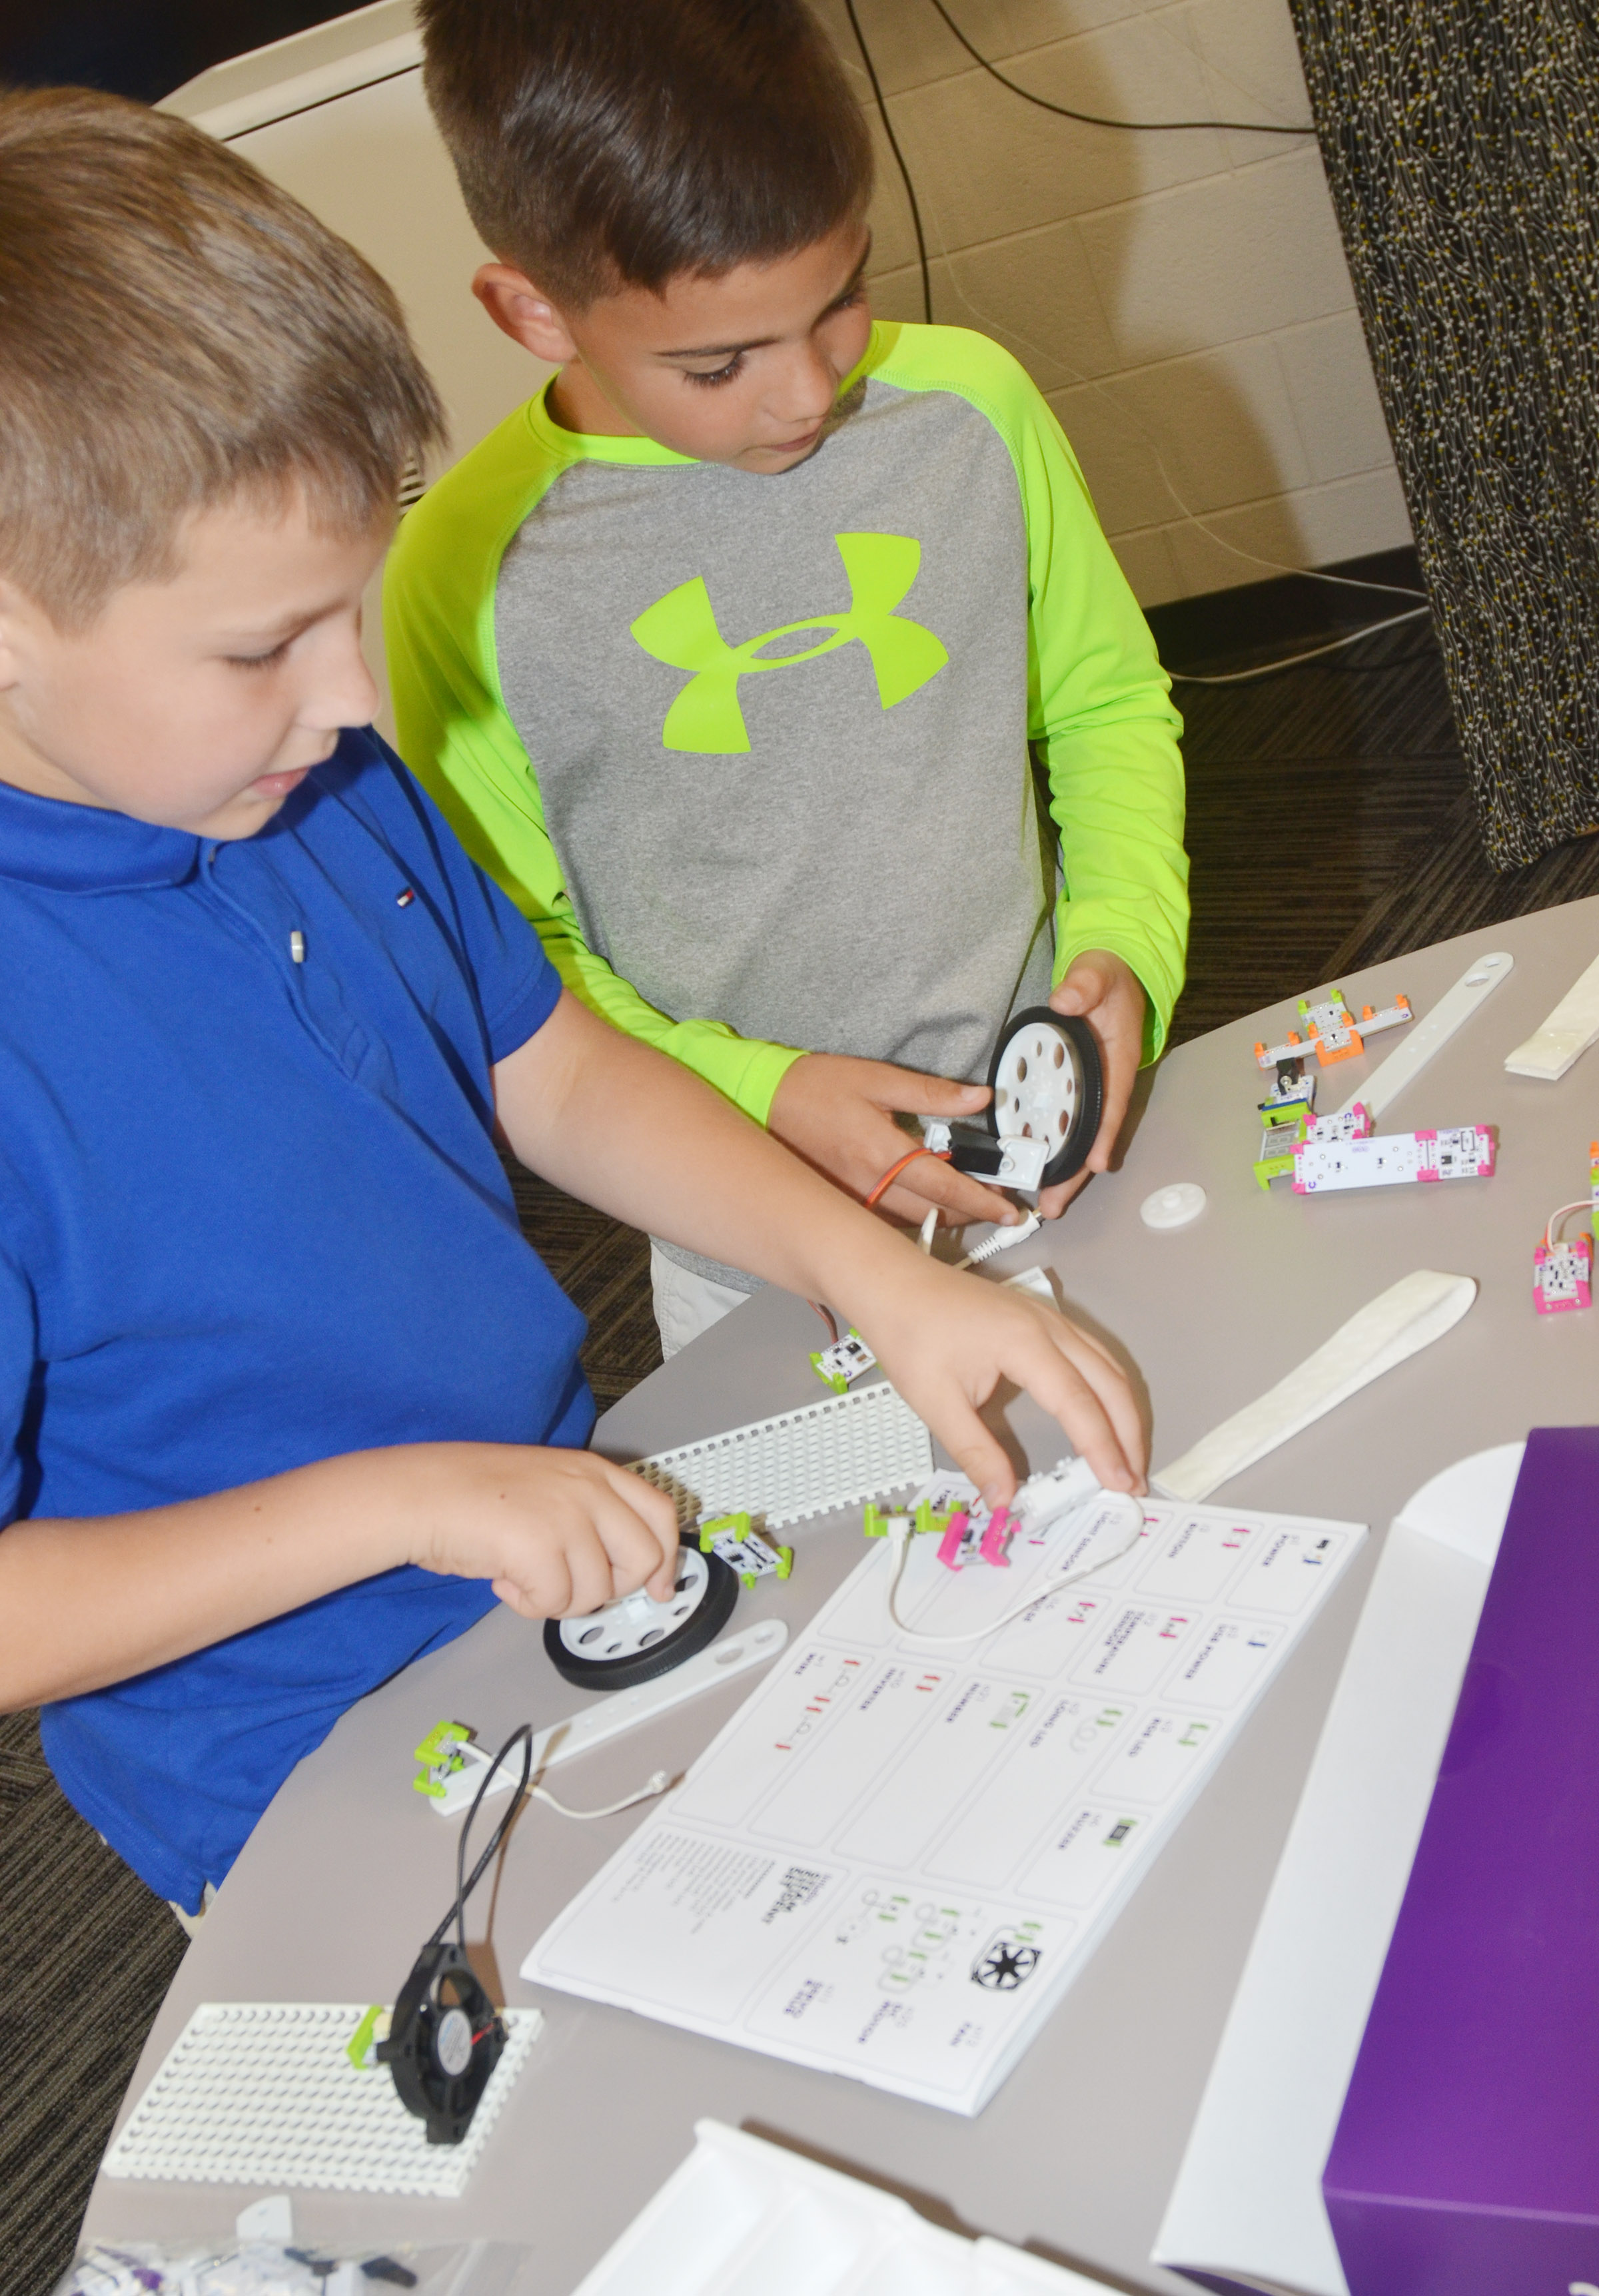 CES fourth-graders Grayson Dooley, at left, and Easton Williams work together.